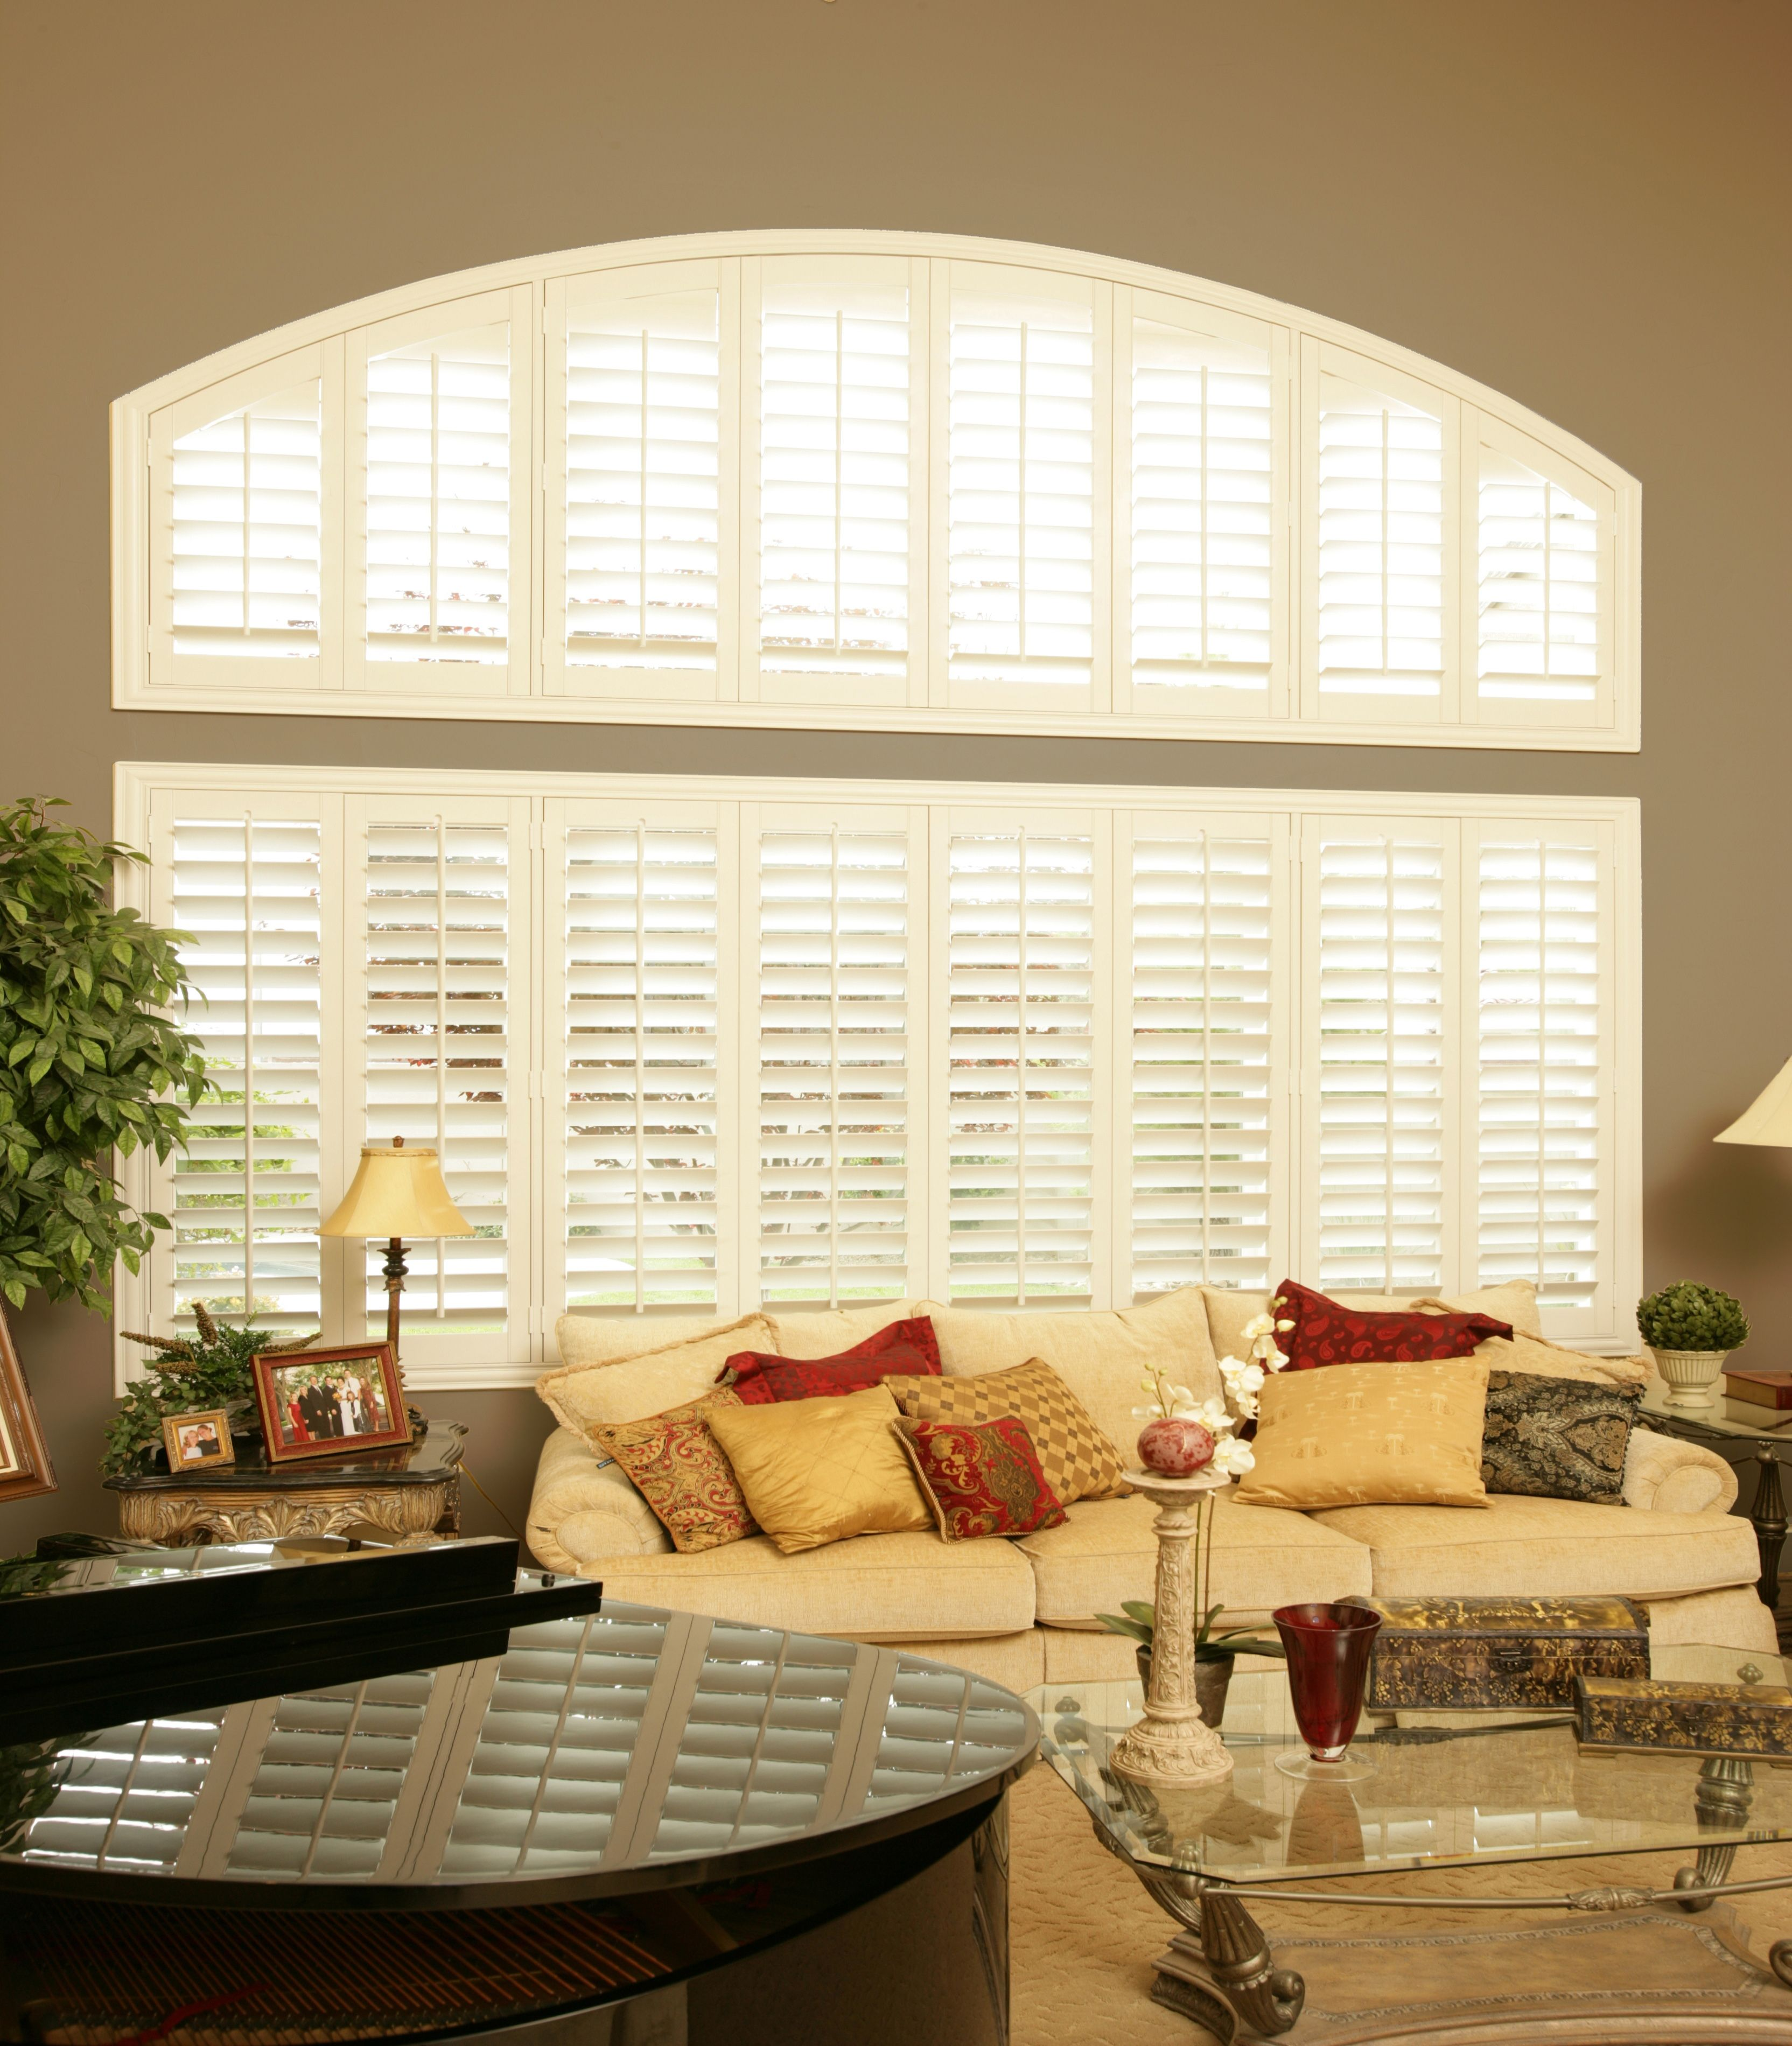 Product Page (With images) Sunburst shutters, Custom